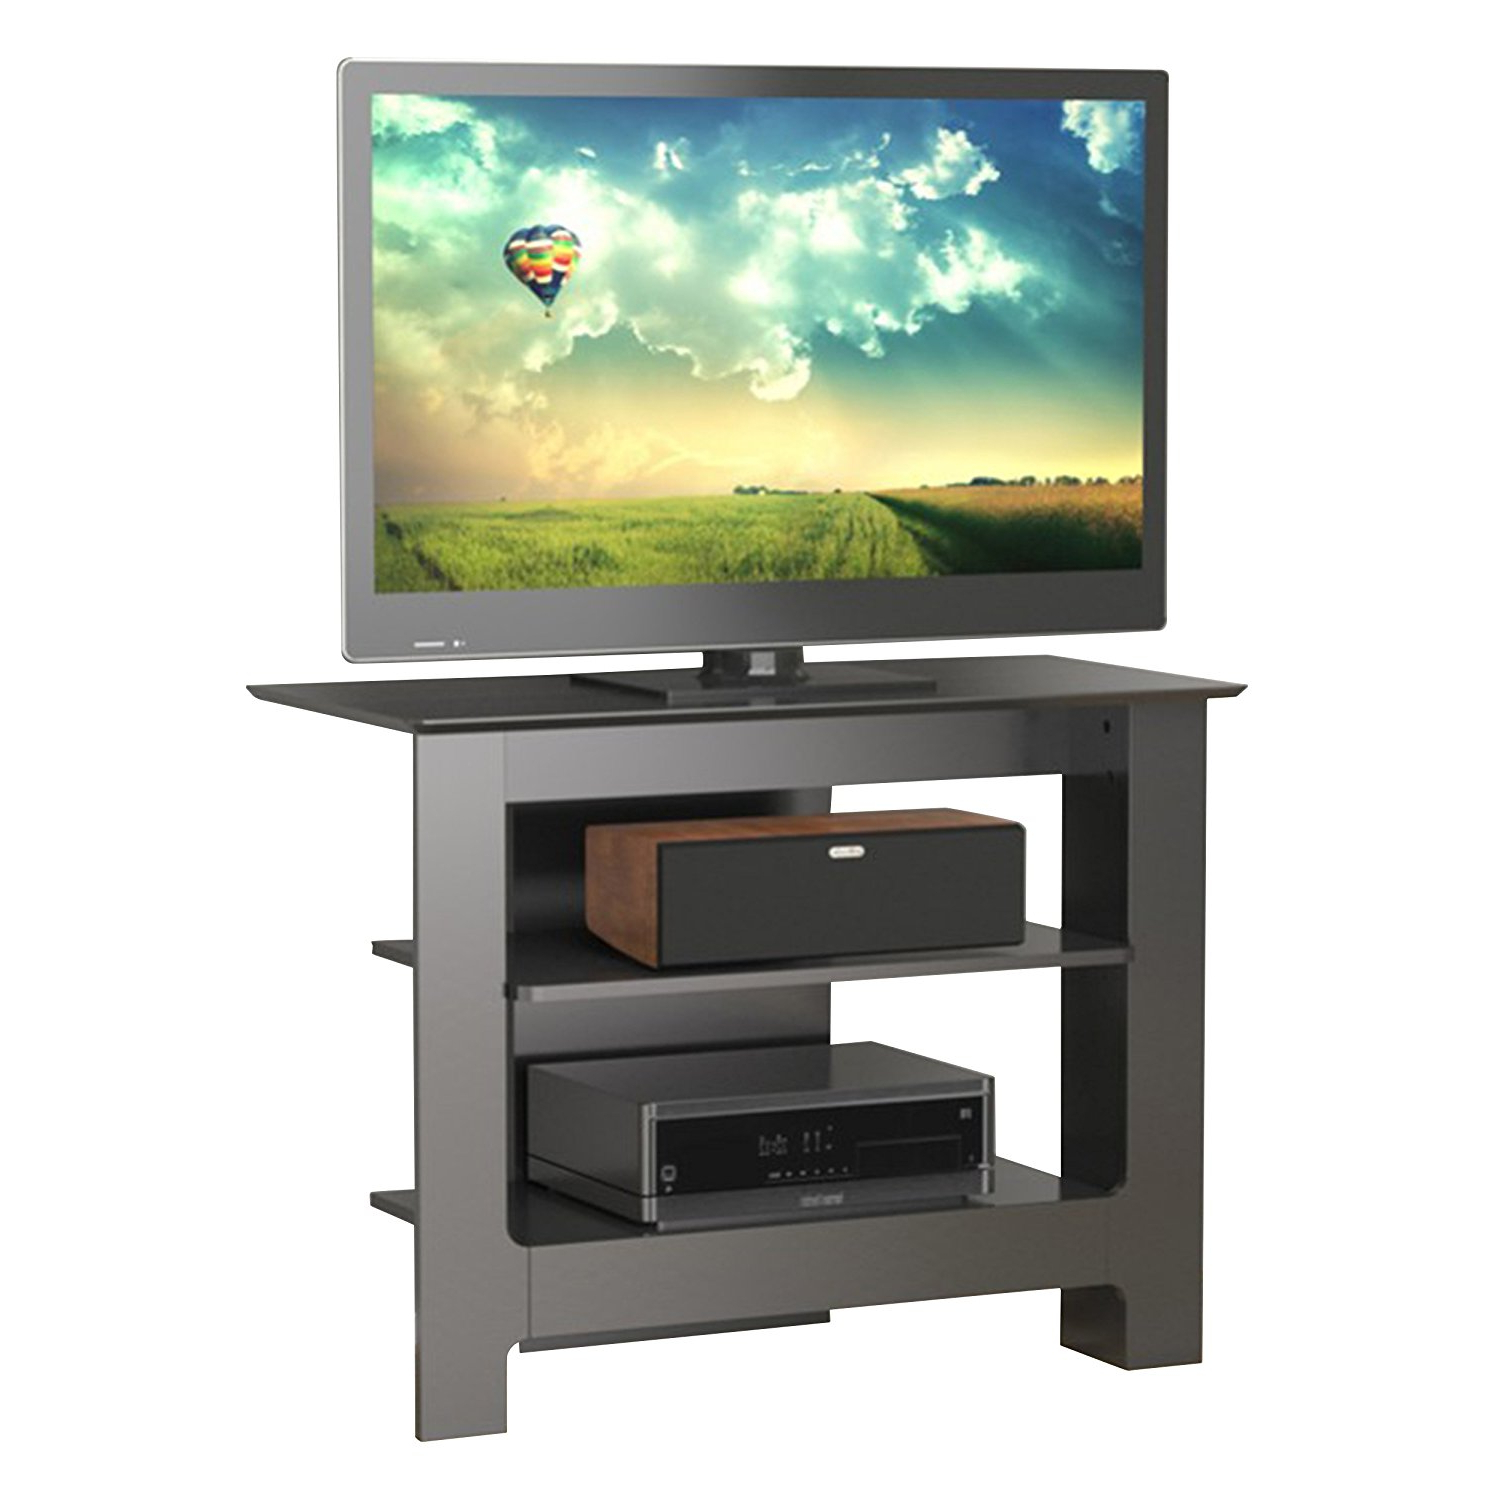 Tv Stands 40 Inches Wide Throughout Newest Cheap 40 Inch Corner Tv Stand, Find 40 Inch Corner Tv Stand Deals On (View 17 of 20)